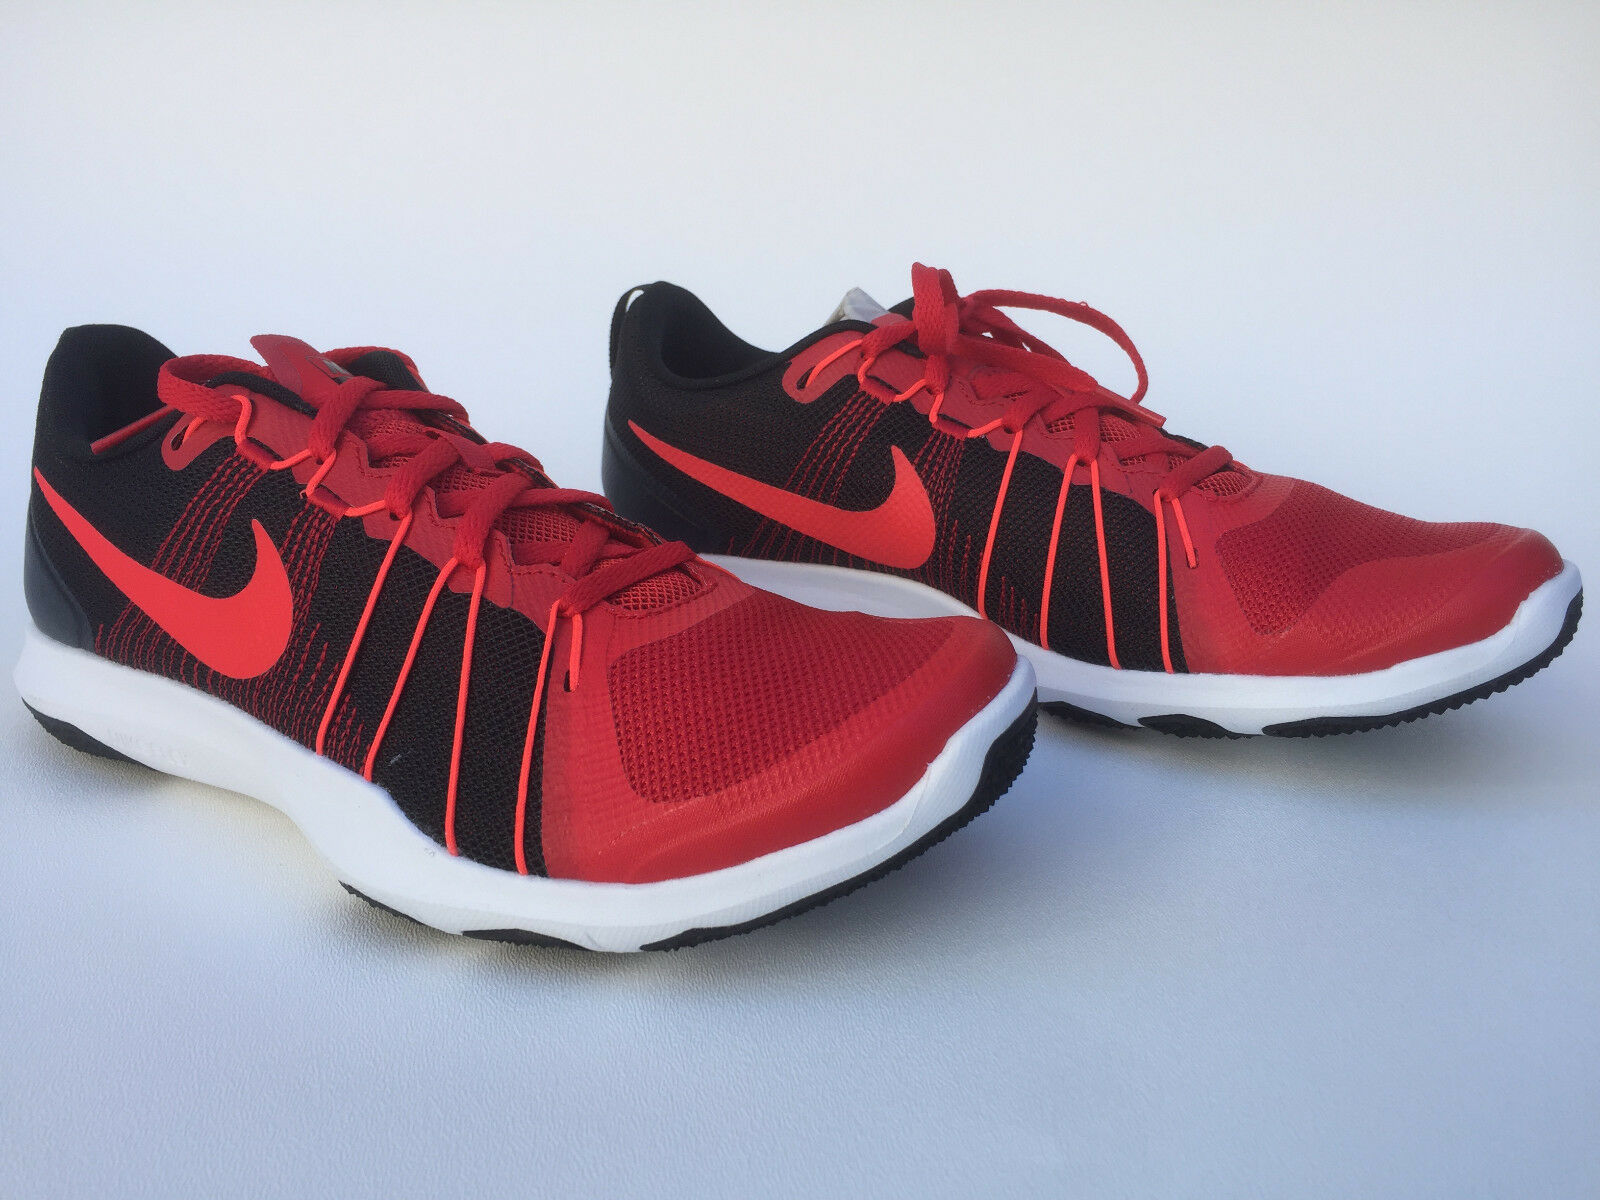 4842c2a457aa Nike Flex Train Aver Running Shoes Mens Red Black White 831568600 ...